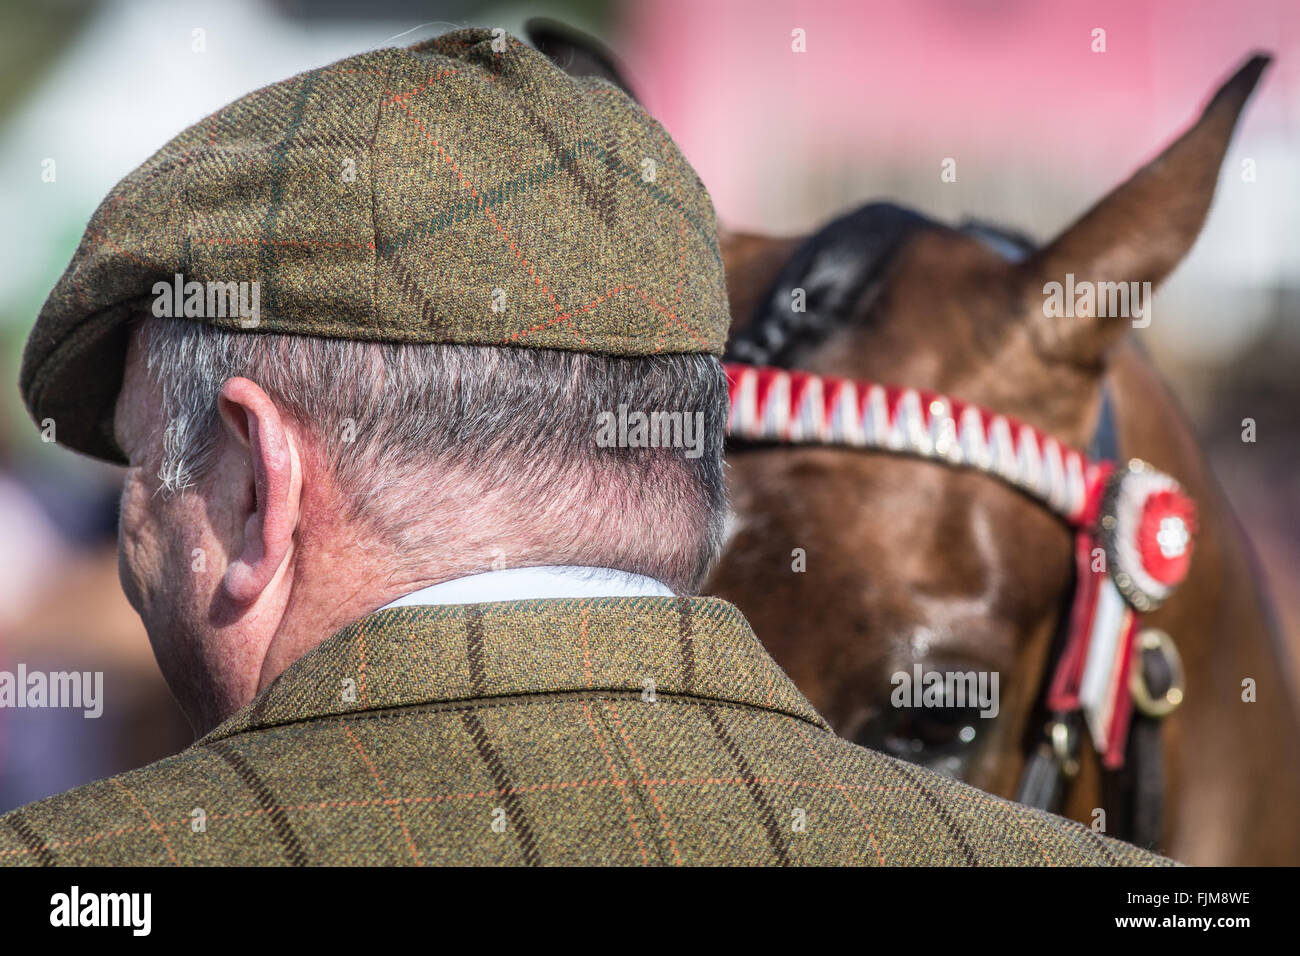 scenes from the Devon County show. - Stock Image